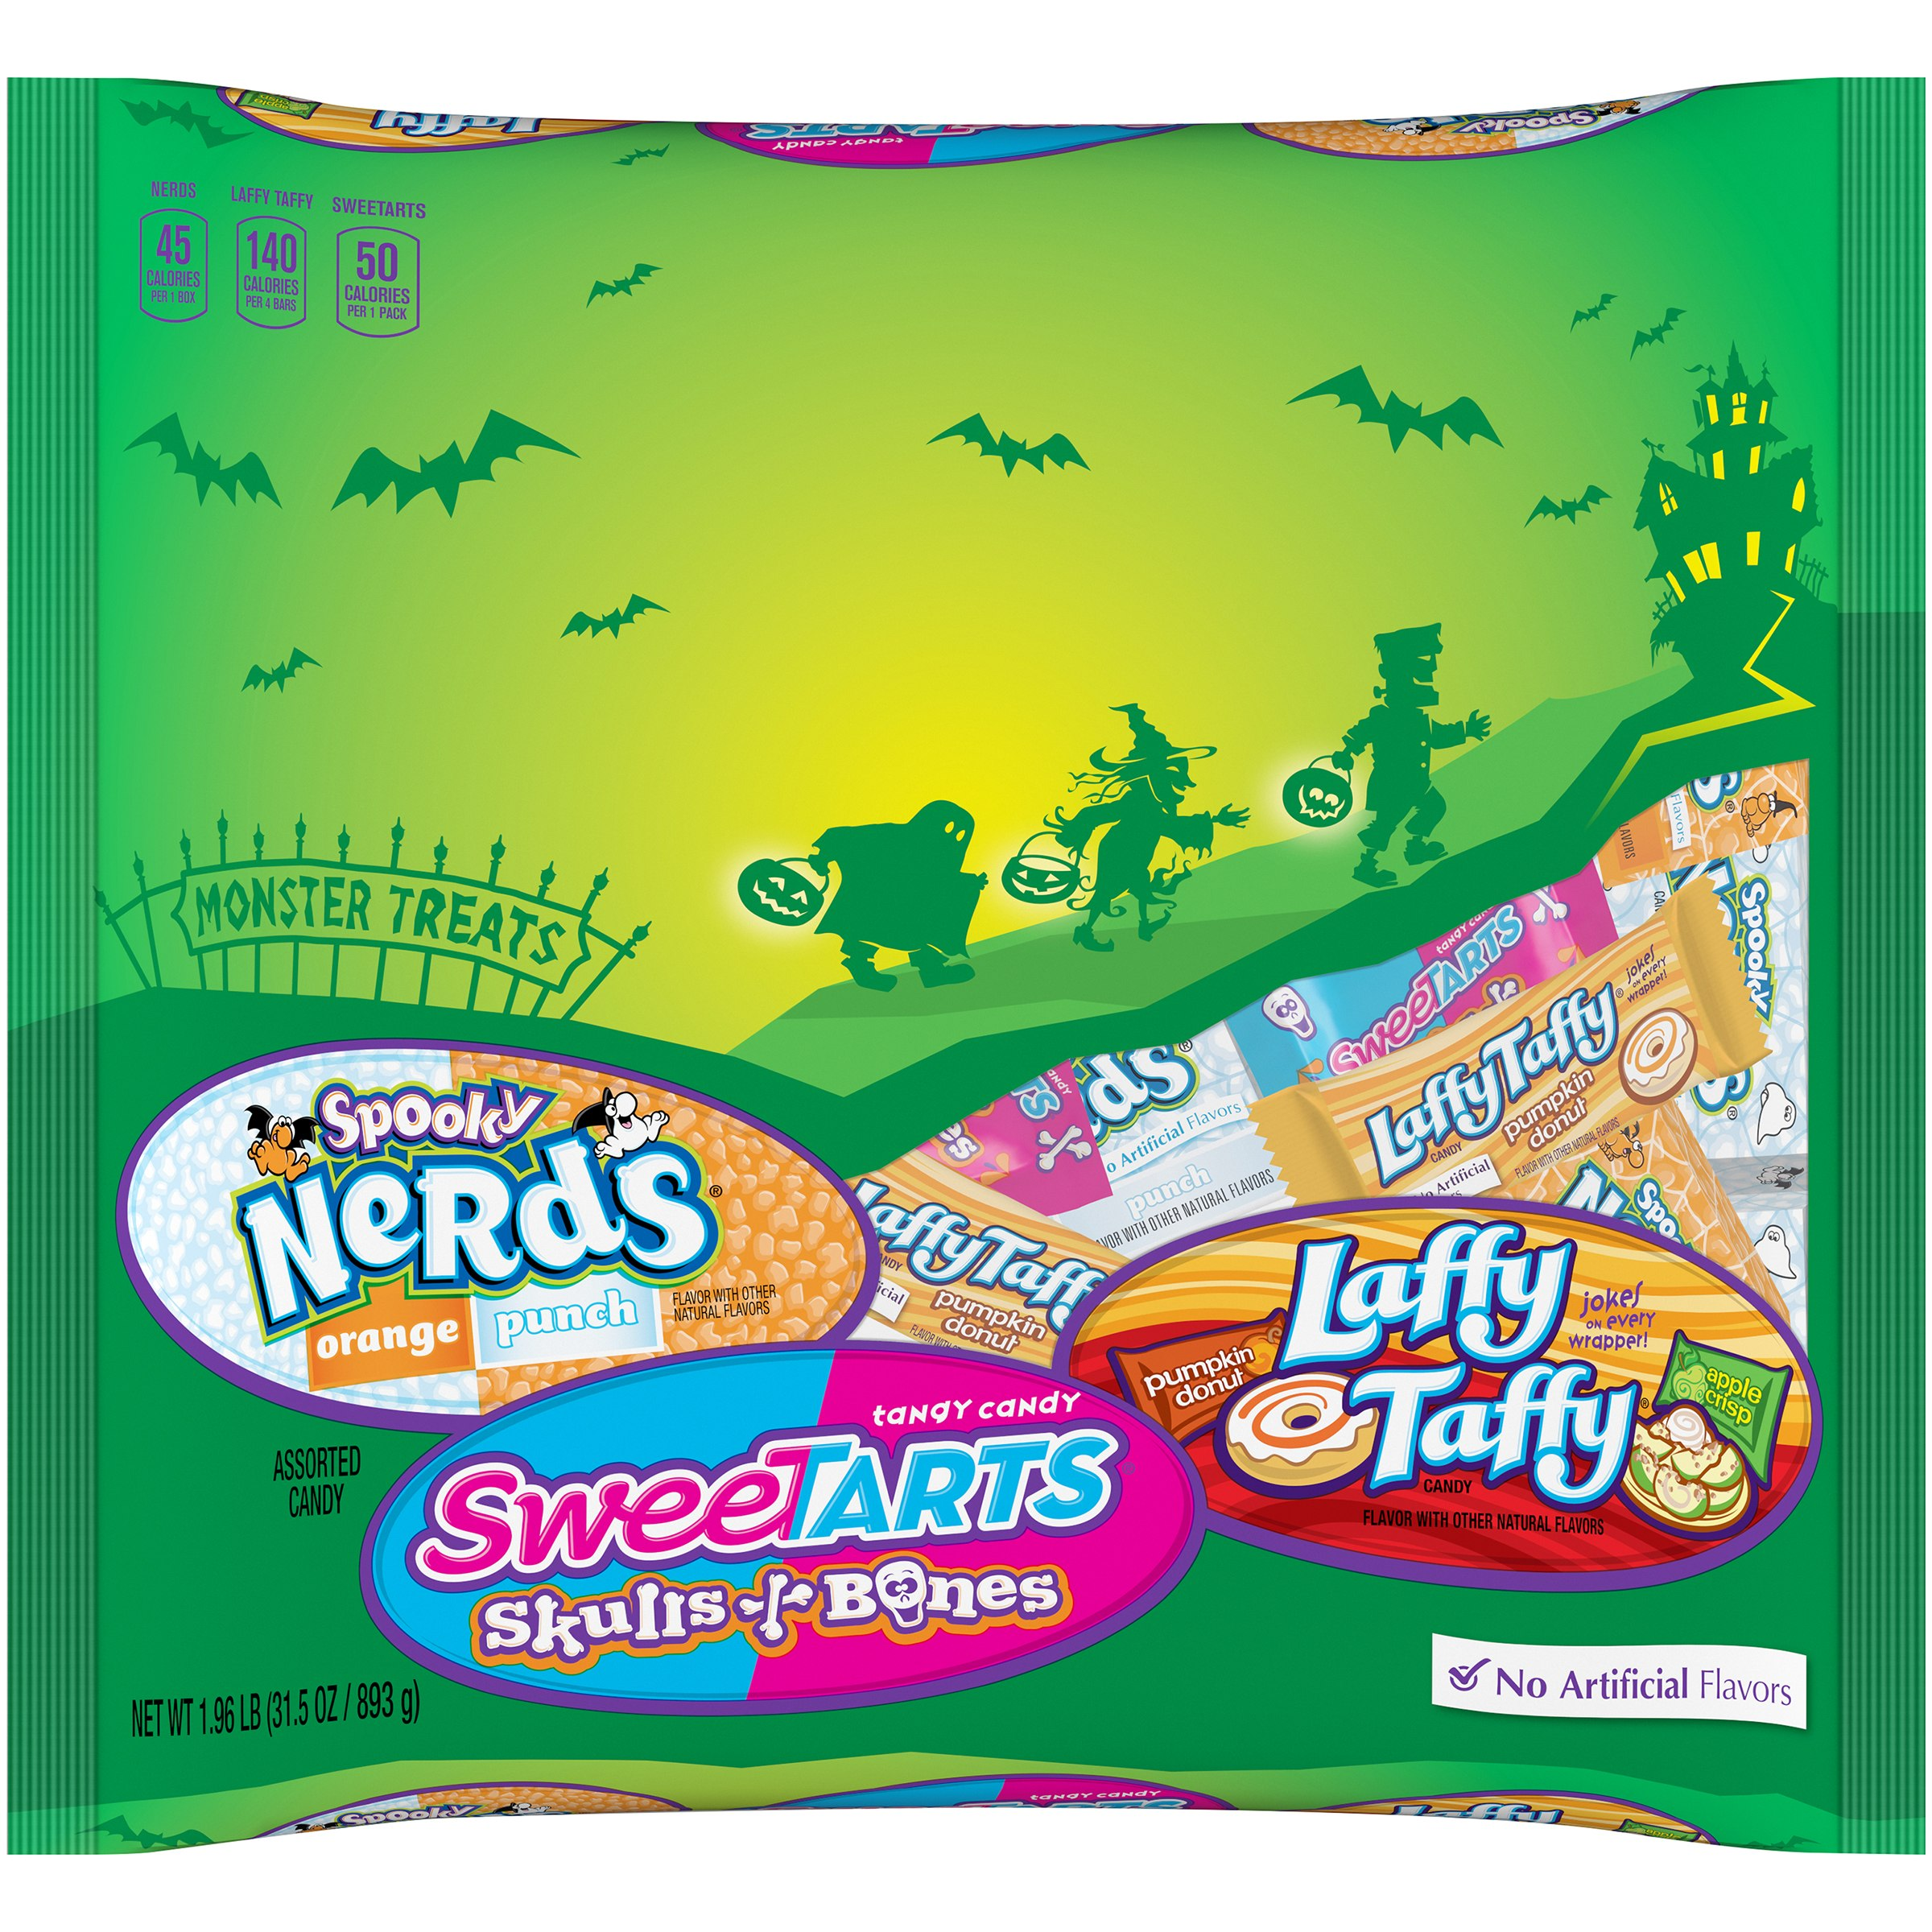 NESTLE Monster Treats Assorted Sugar 31.5 oz Bag